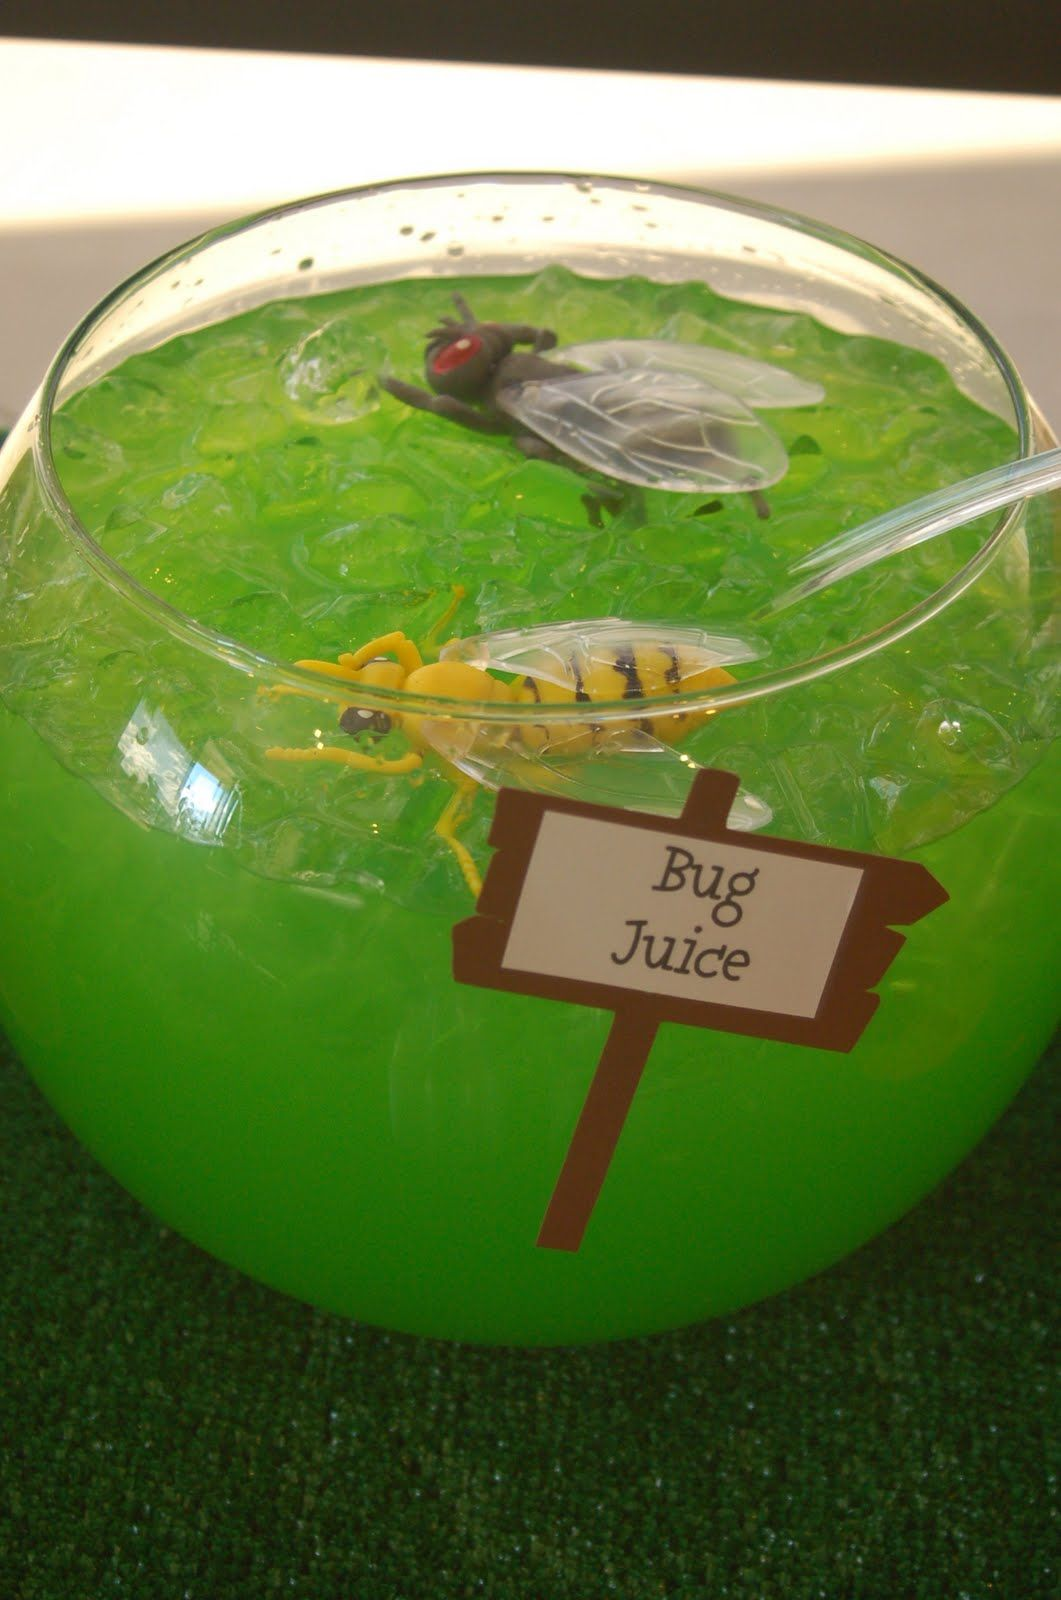 halloween theme birthday party bug juice and other bug theme party ideas from casa sonrisa - Halloween Decorations For A Party